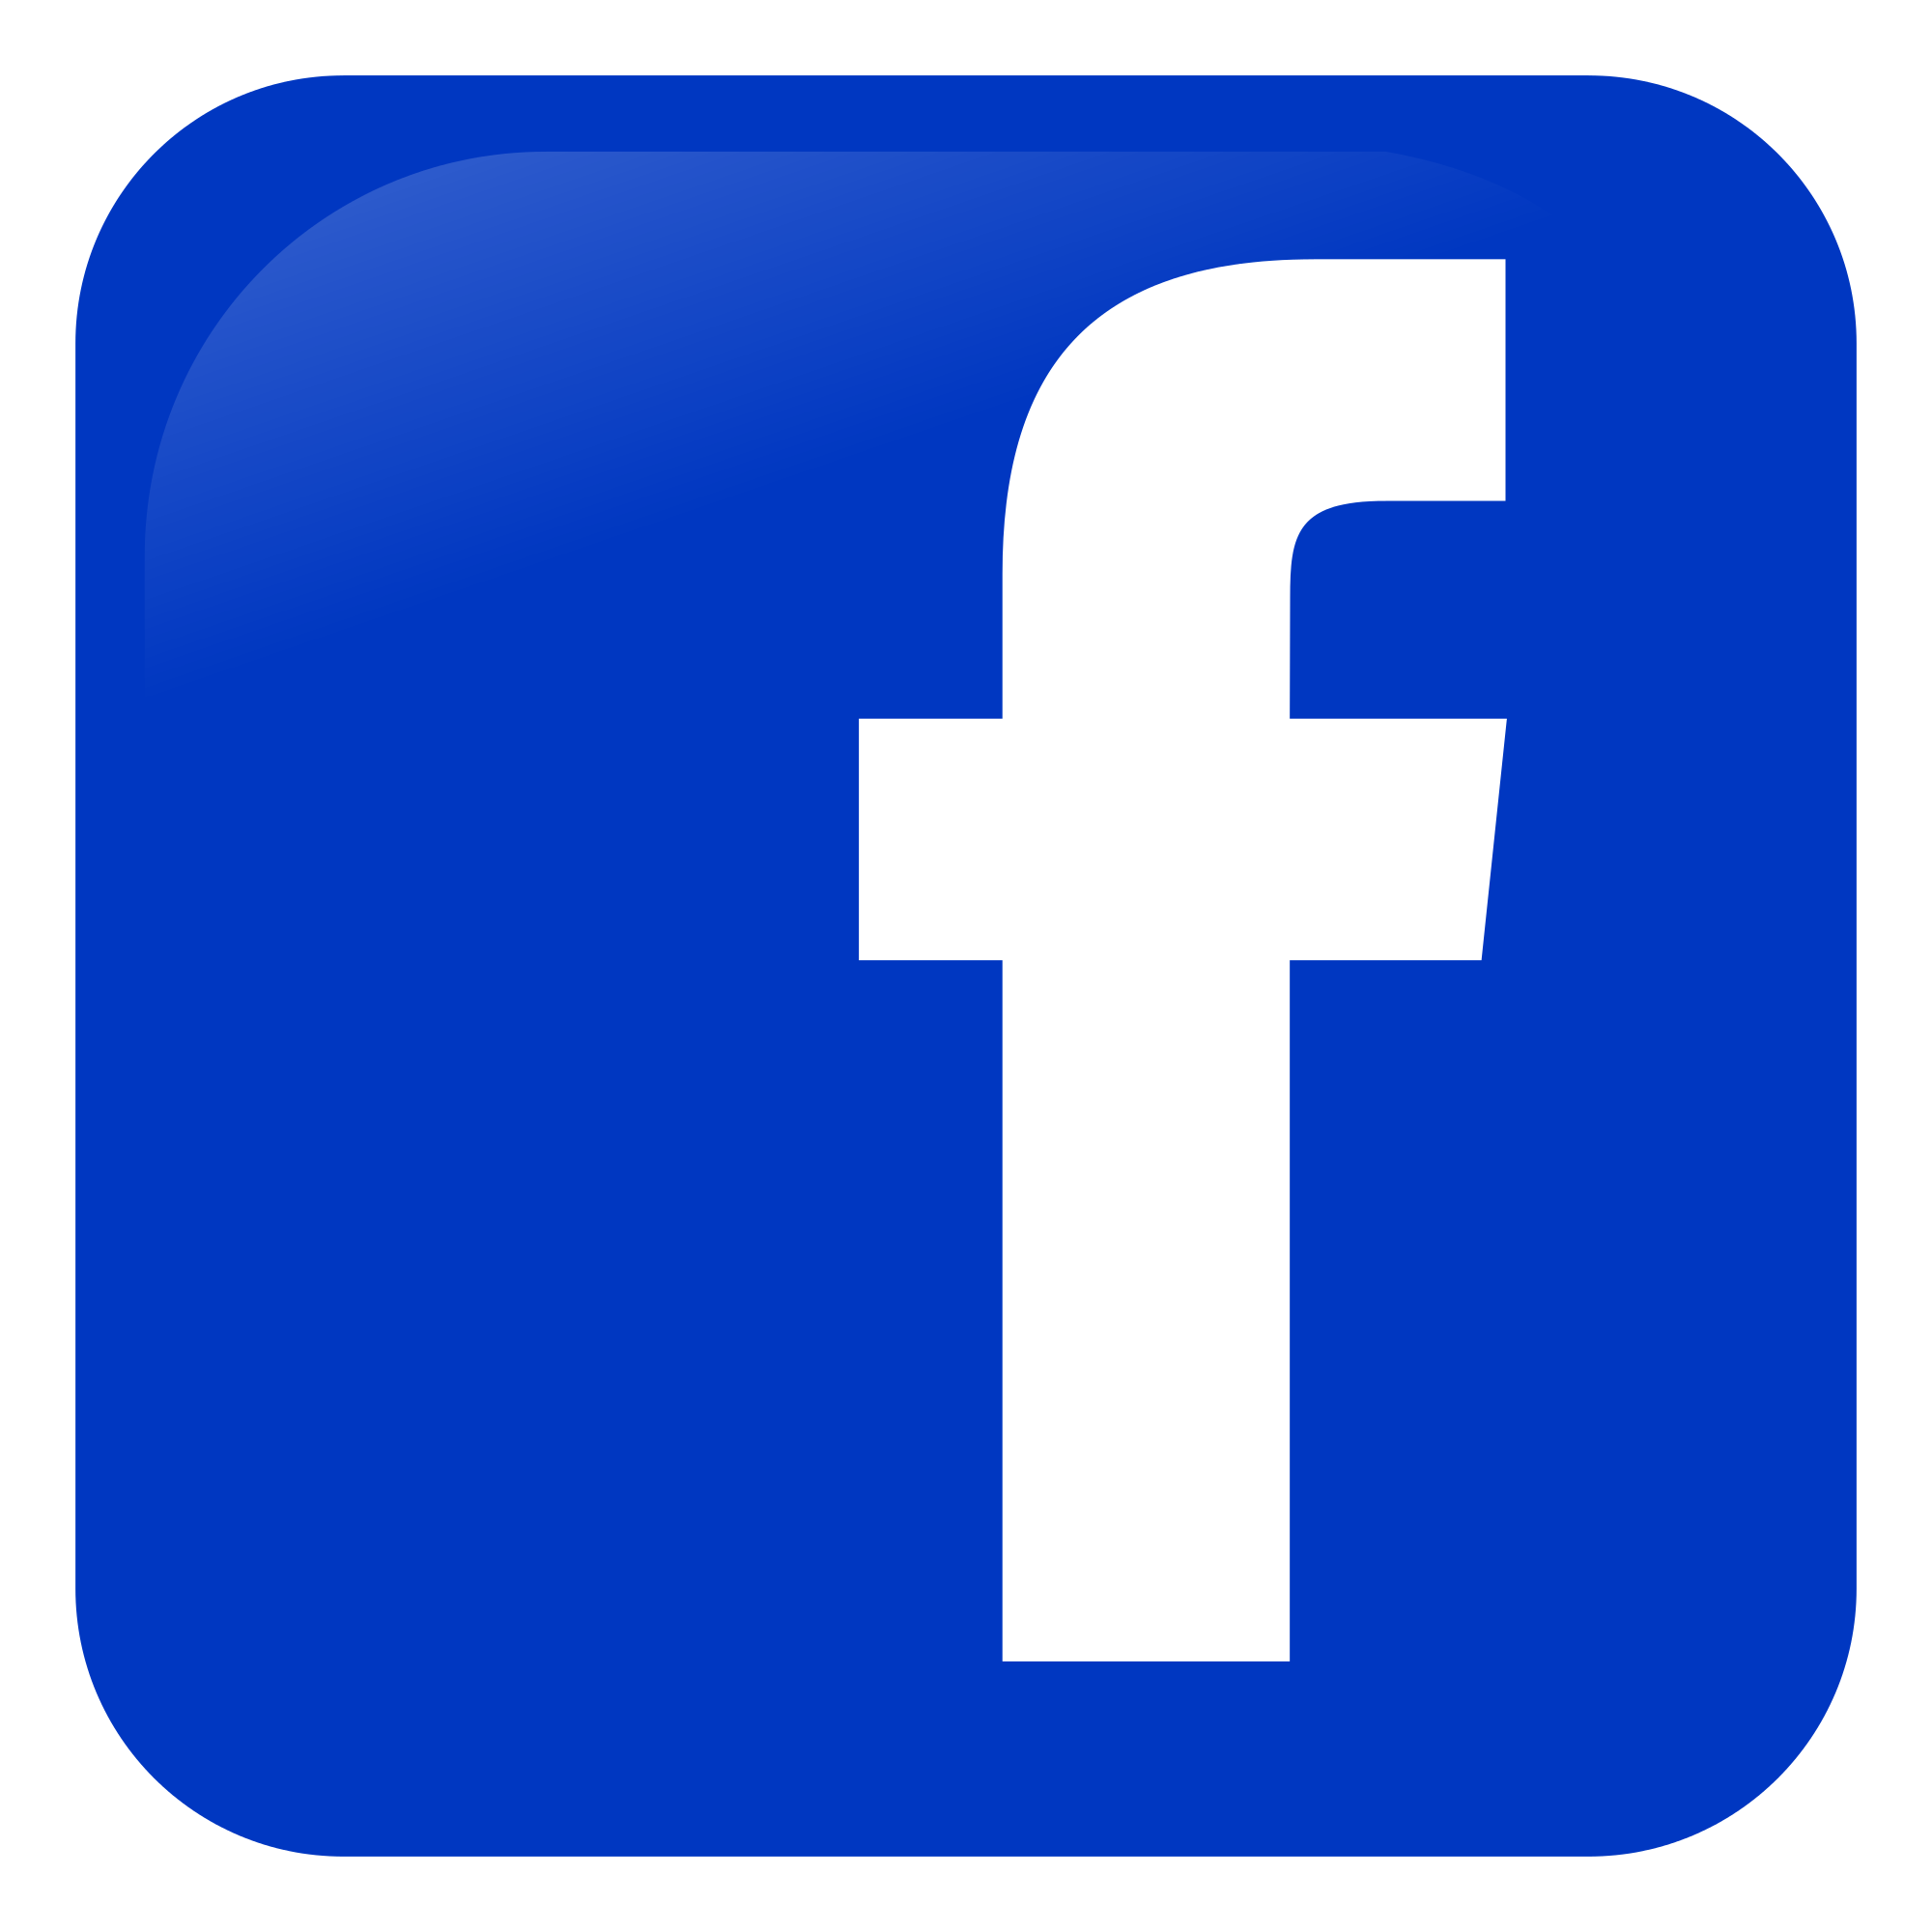 Facebook_icon-svg.png